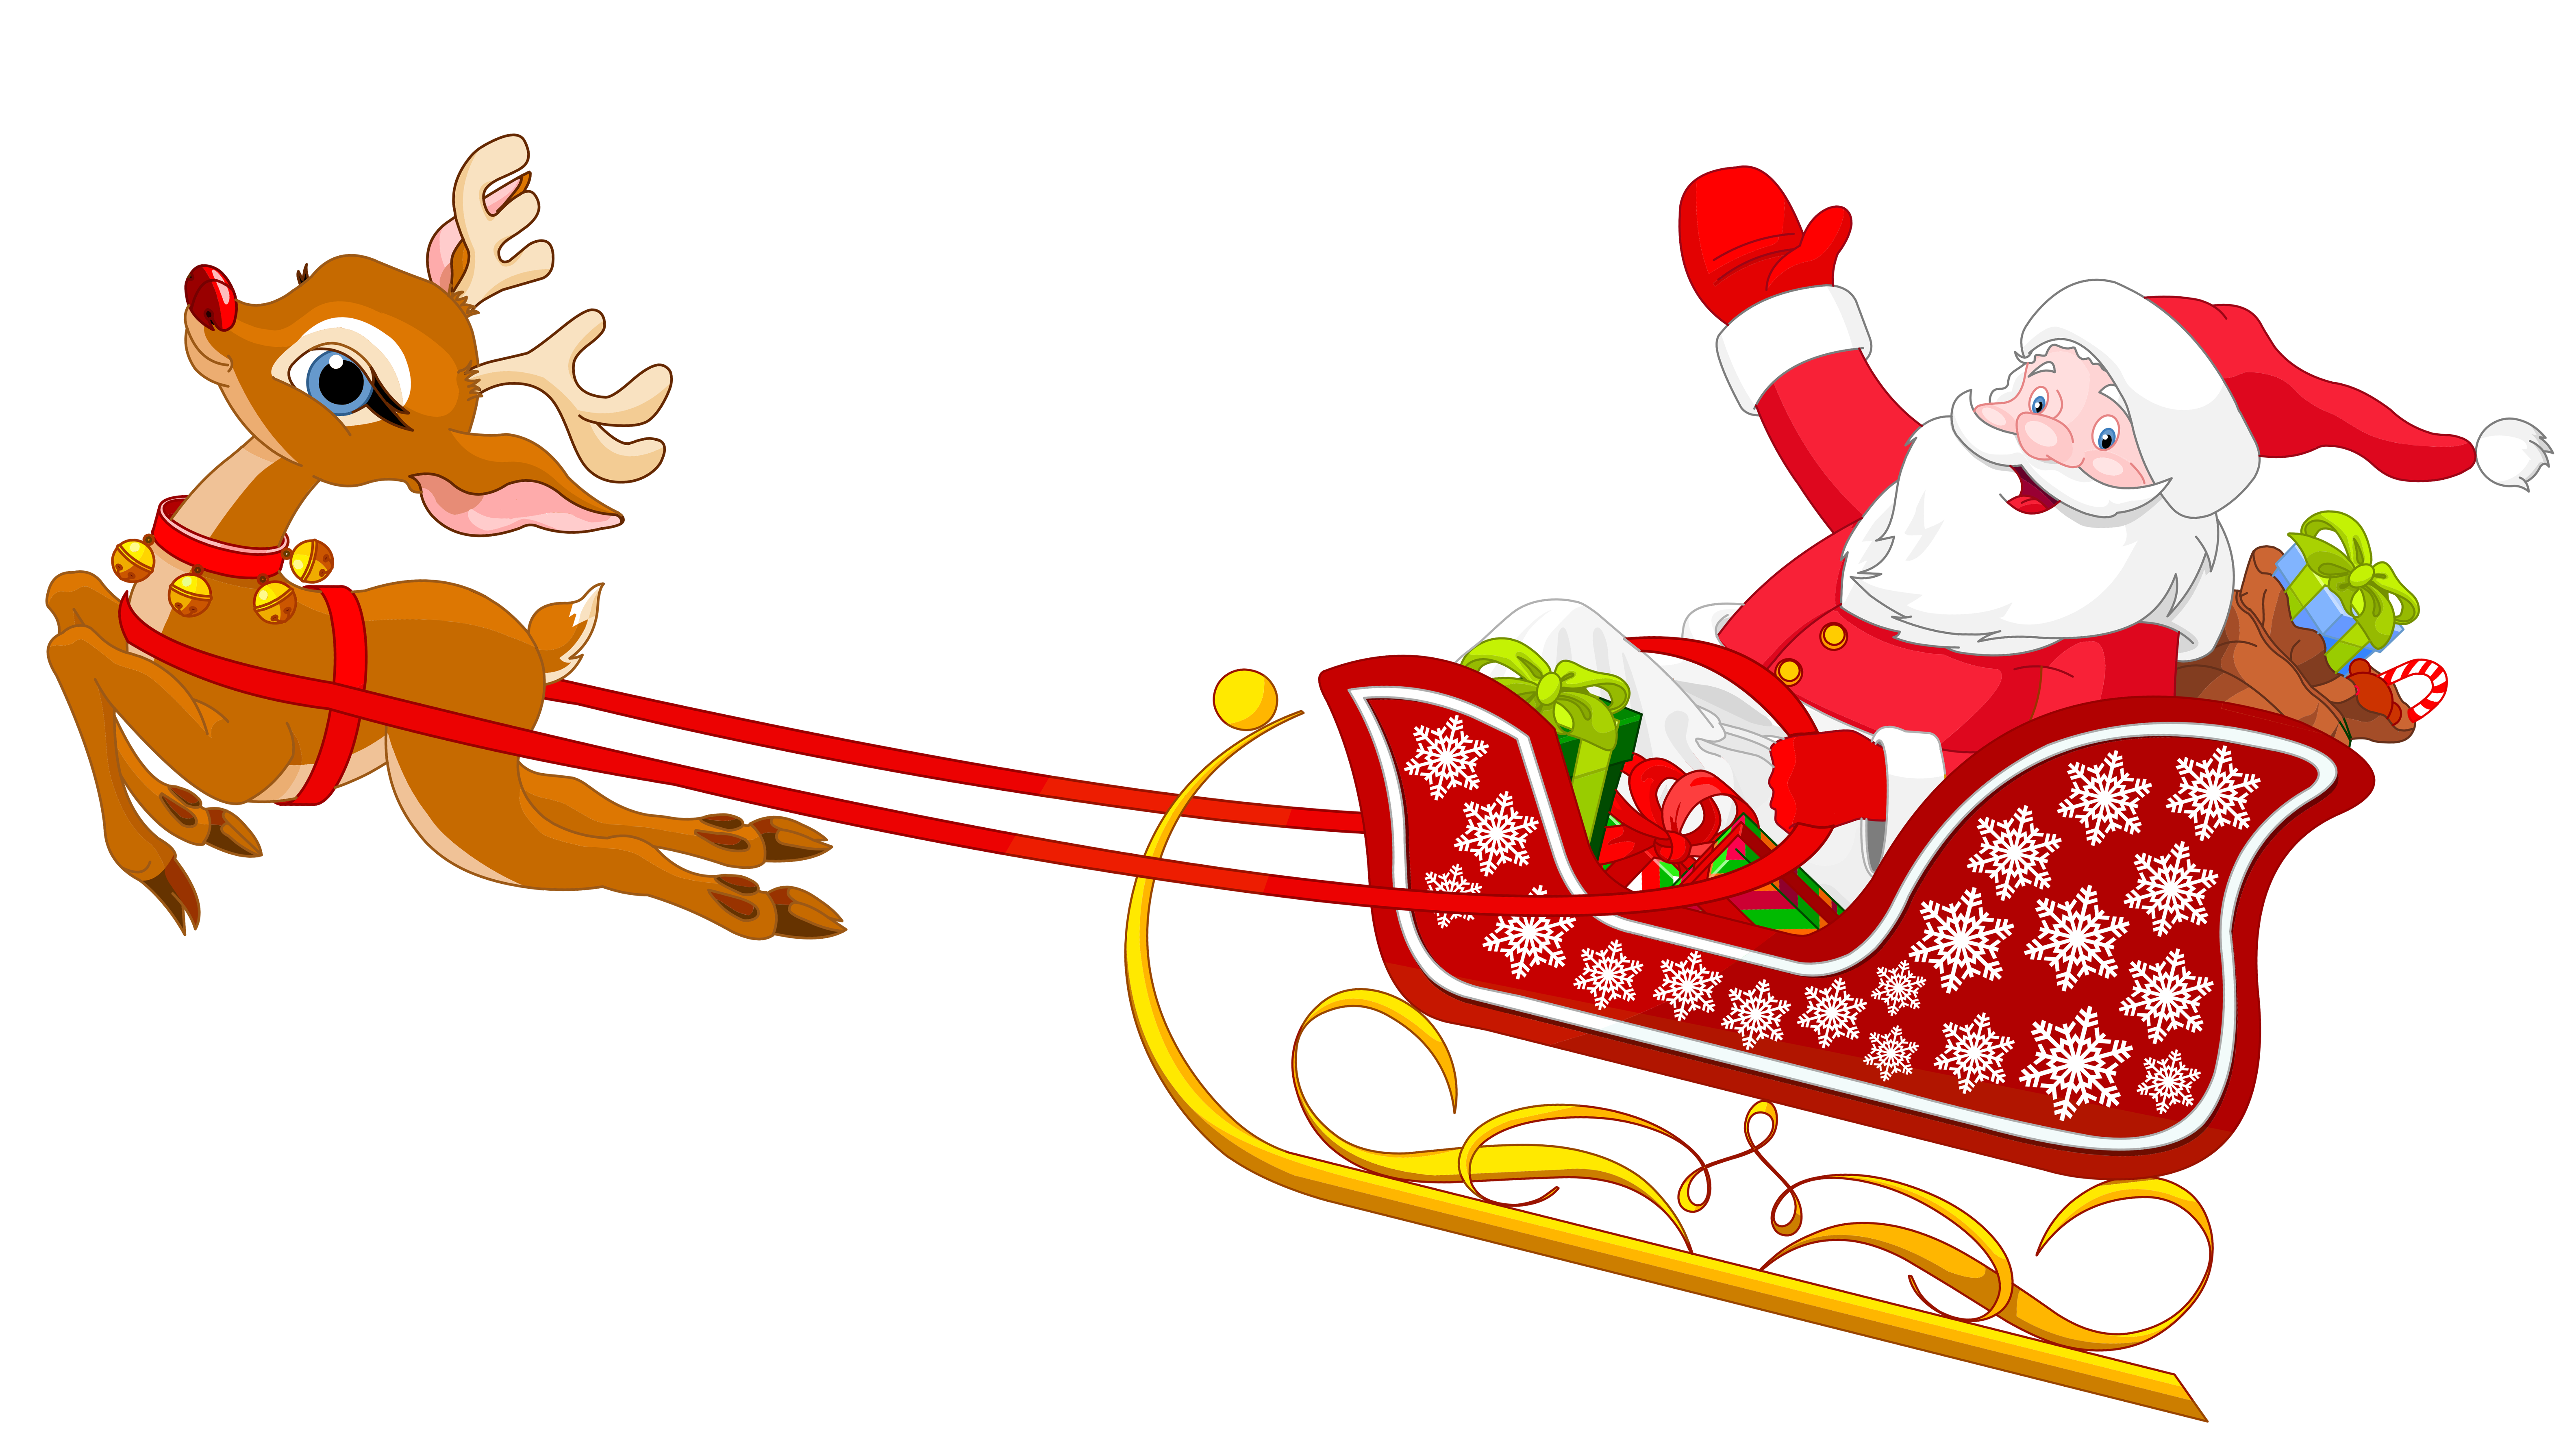 Santa in a car clipart image black and white stock Santa Silhouette Clipart at GetDrawings.com | Free for personal use ... image black and white stock